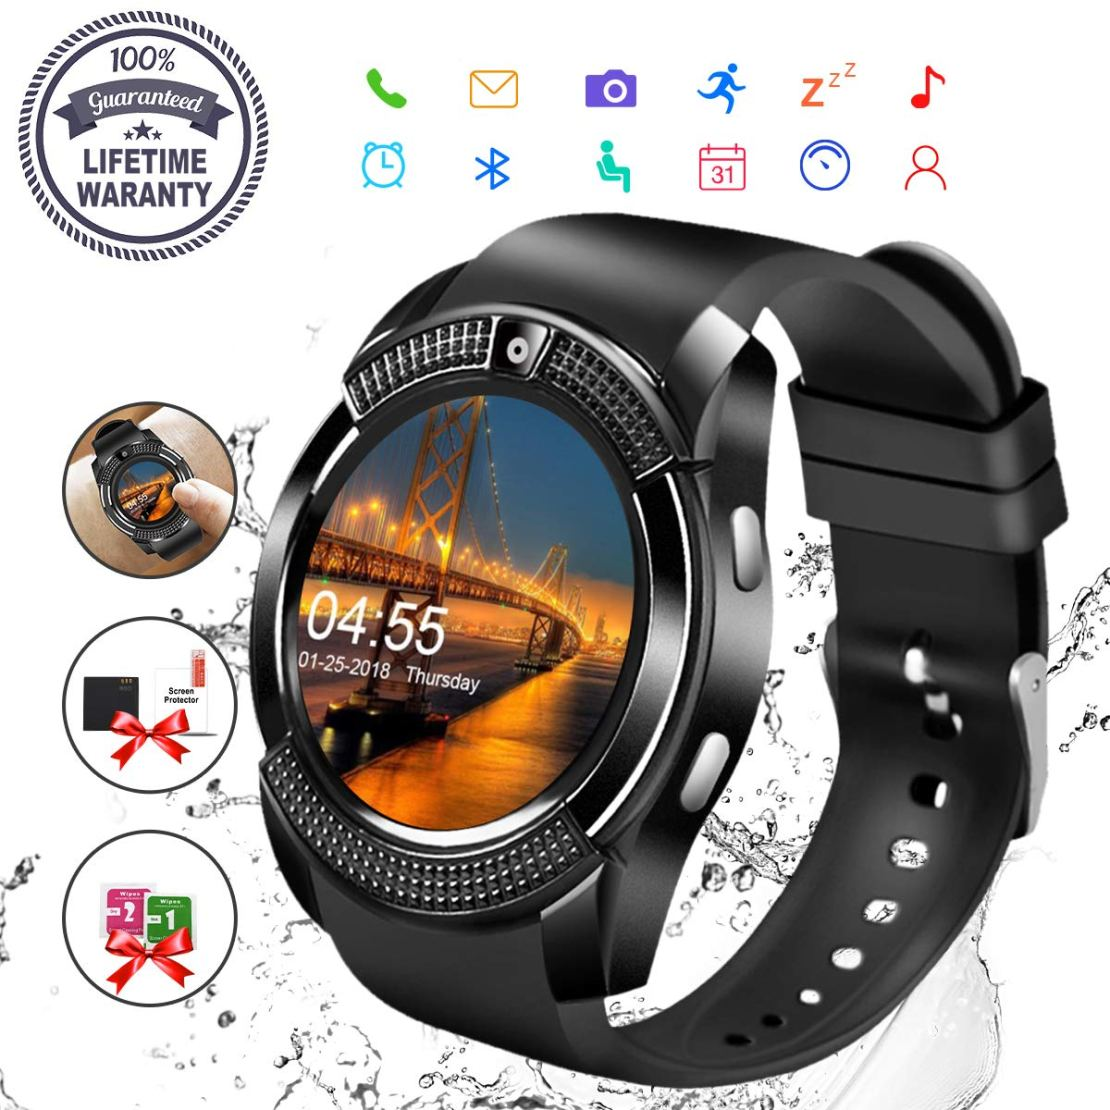 718rTHUqP9L. SL1200  - 10 Best Smartwatches 2019